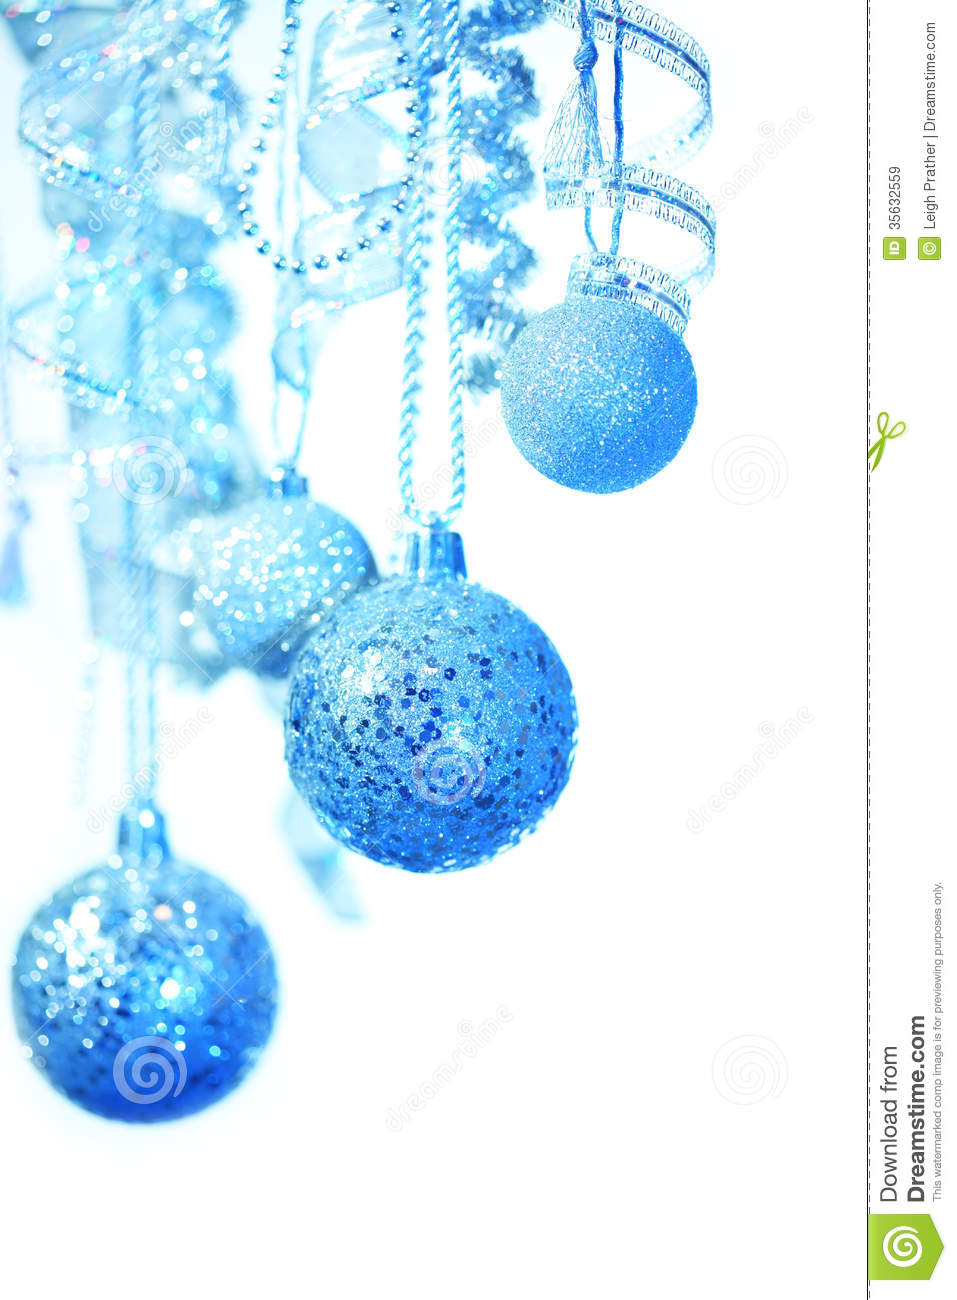 Hanging Christmas Decorations Stock Image  Image Of Blue. Felt Christmas Decorations Etsy. When Do Disney Christmas Decorations Go Up. Types Of Mexican Christmas Decorations. Outdoor Christmas Decorations Homemade Ideas. German Christmas Outdoor Decorations. Christmas Decorations In Johannesburg. Diy Christmas Decorations With Things Around The House. Decorations For Christmas Pictures